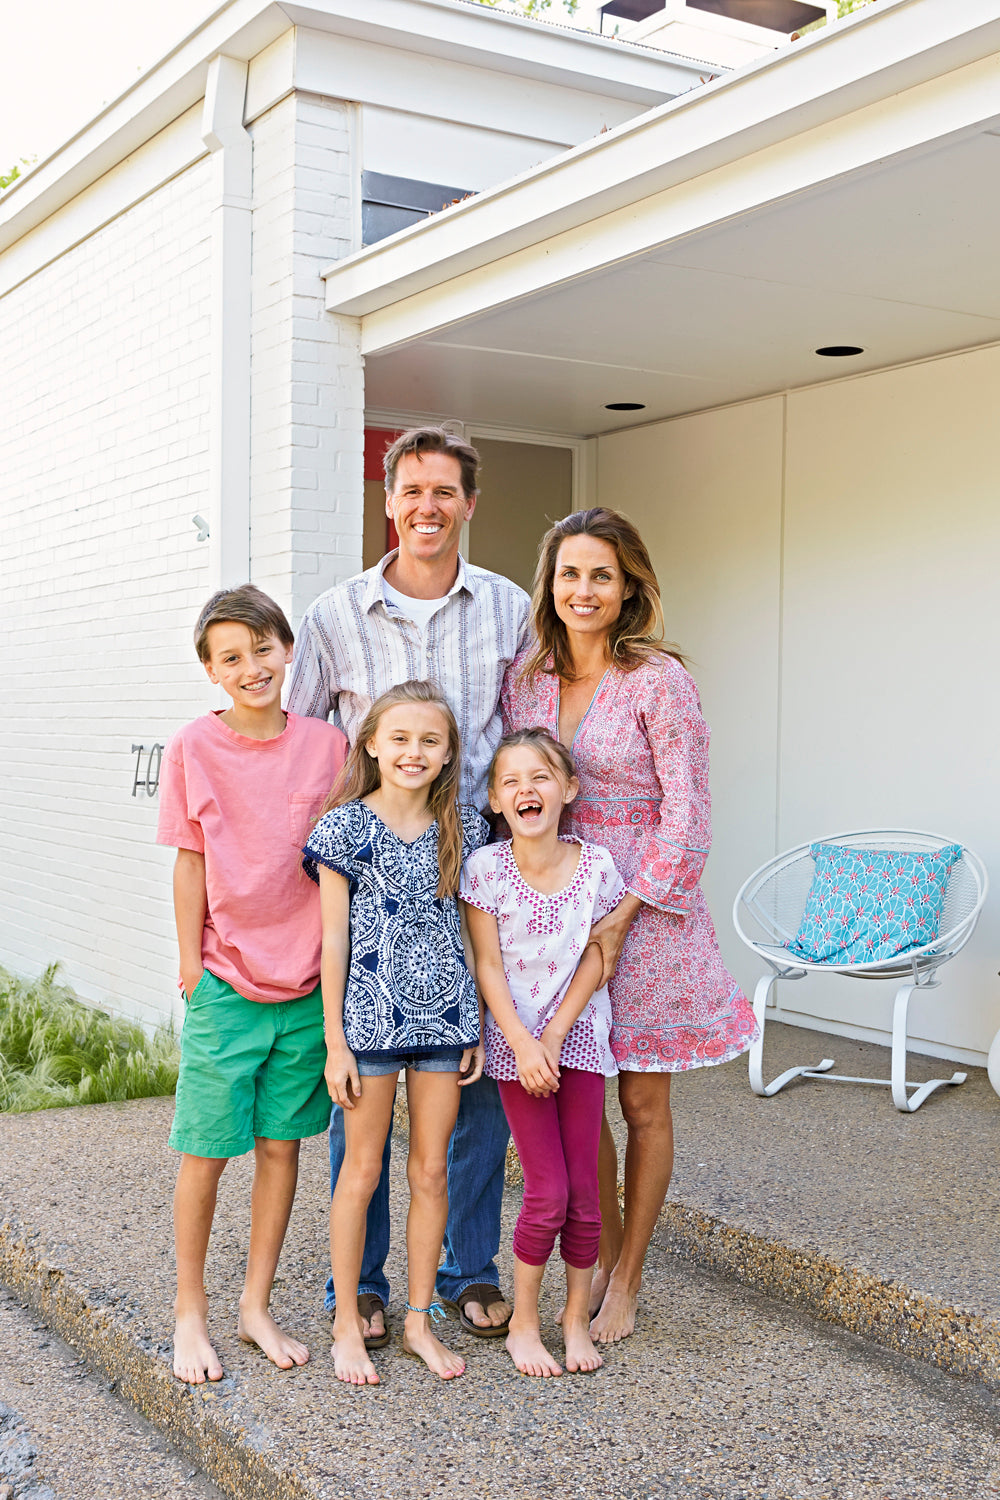 The Needleman family, Josh, his wife Meredith, and their three beautiful children: Lake, Lucy Ray and Eloise